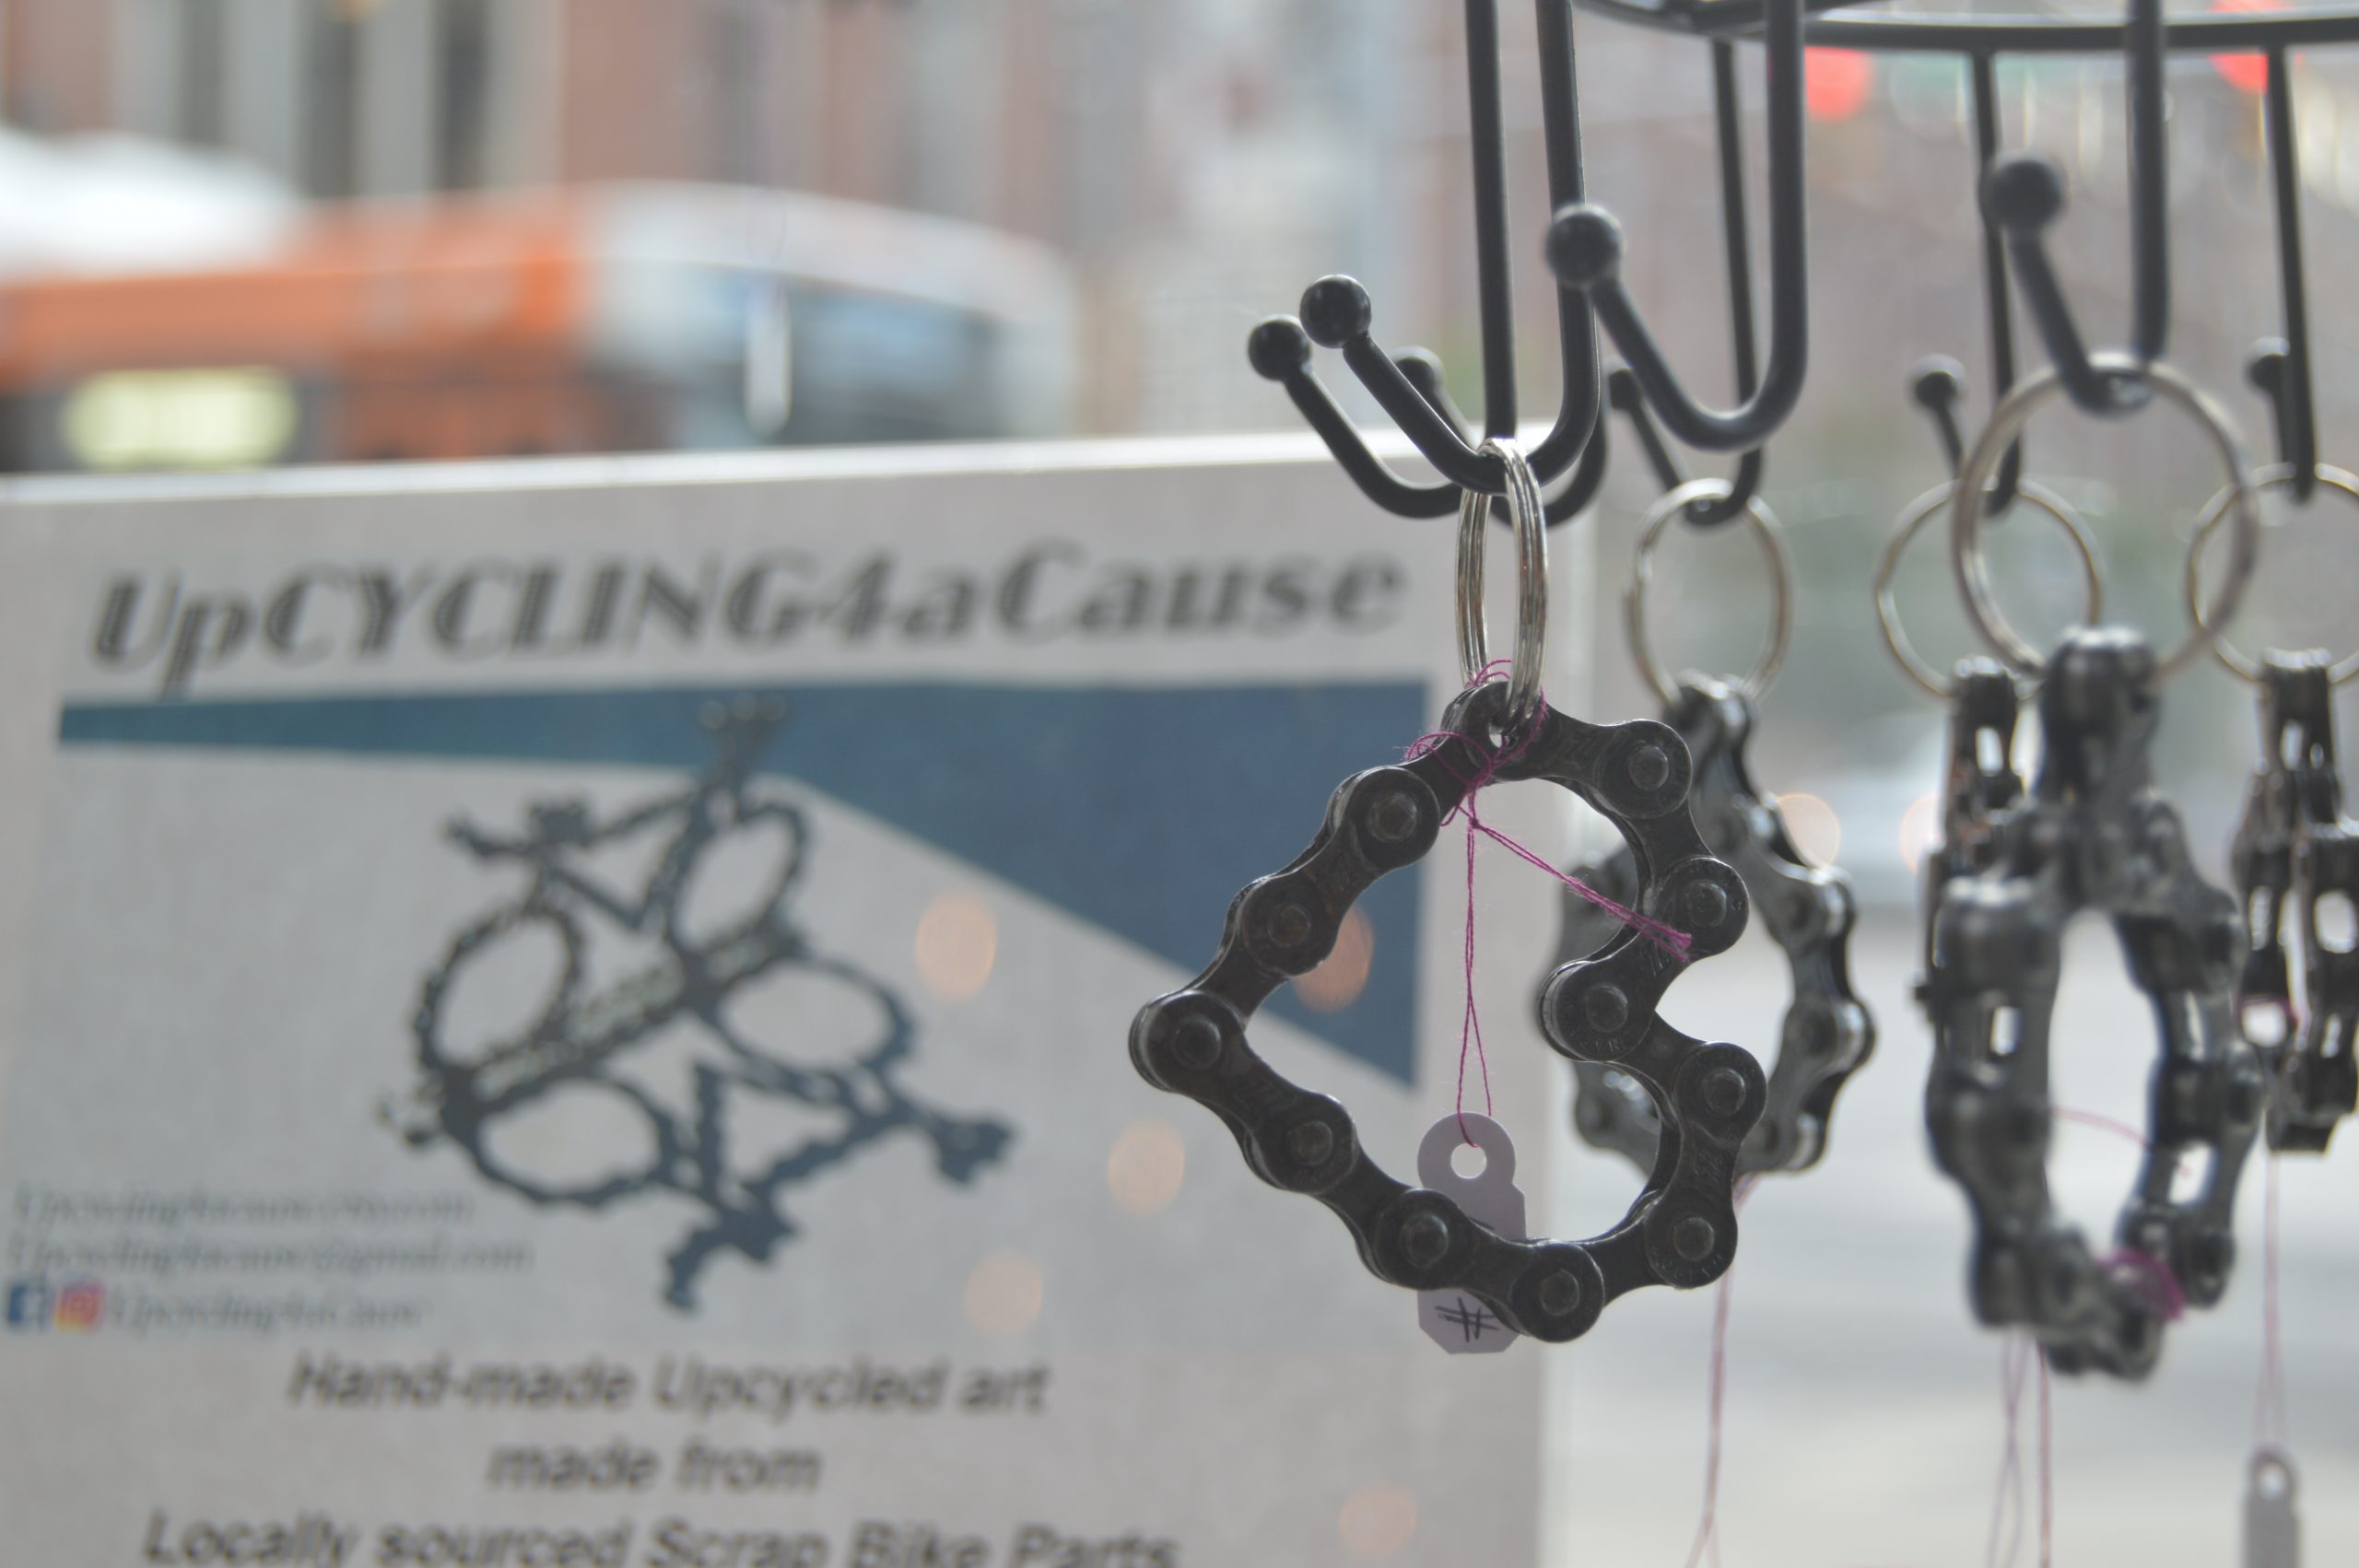 Rob Niederhoff of UpCycling4aCause uses old bike parts to create a variety of new products.